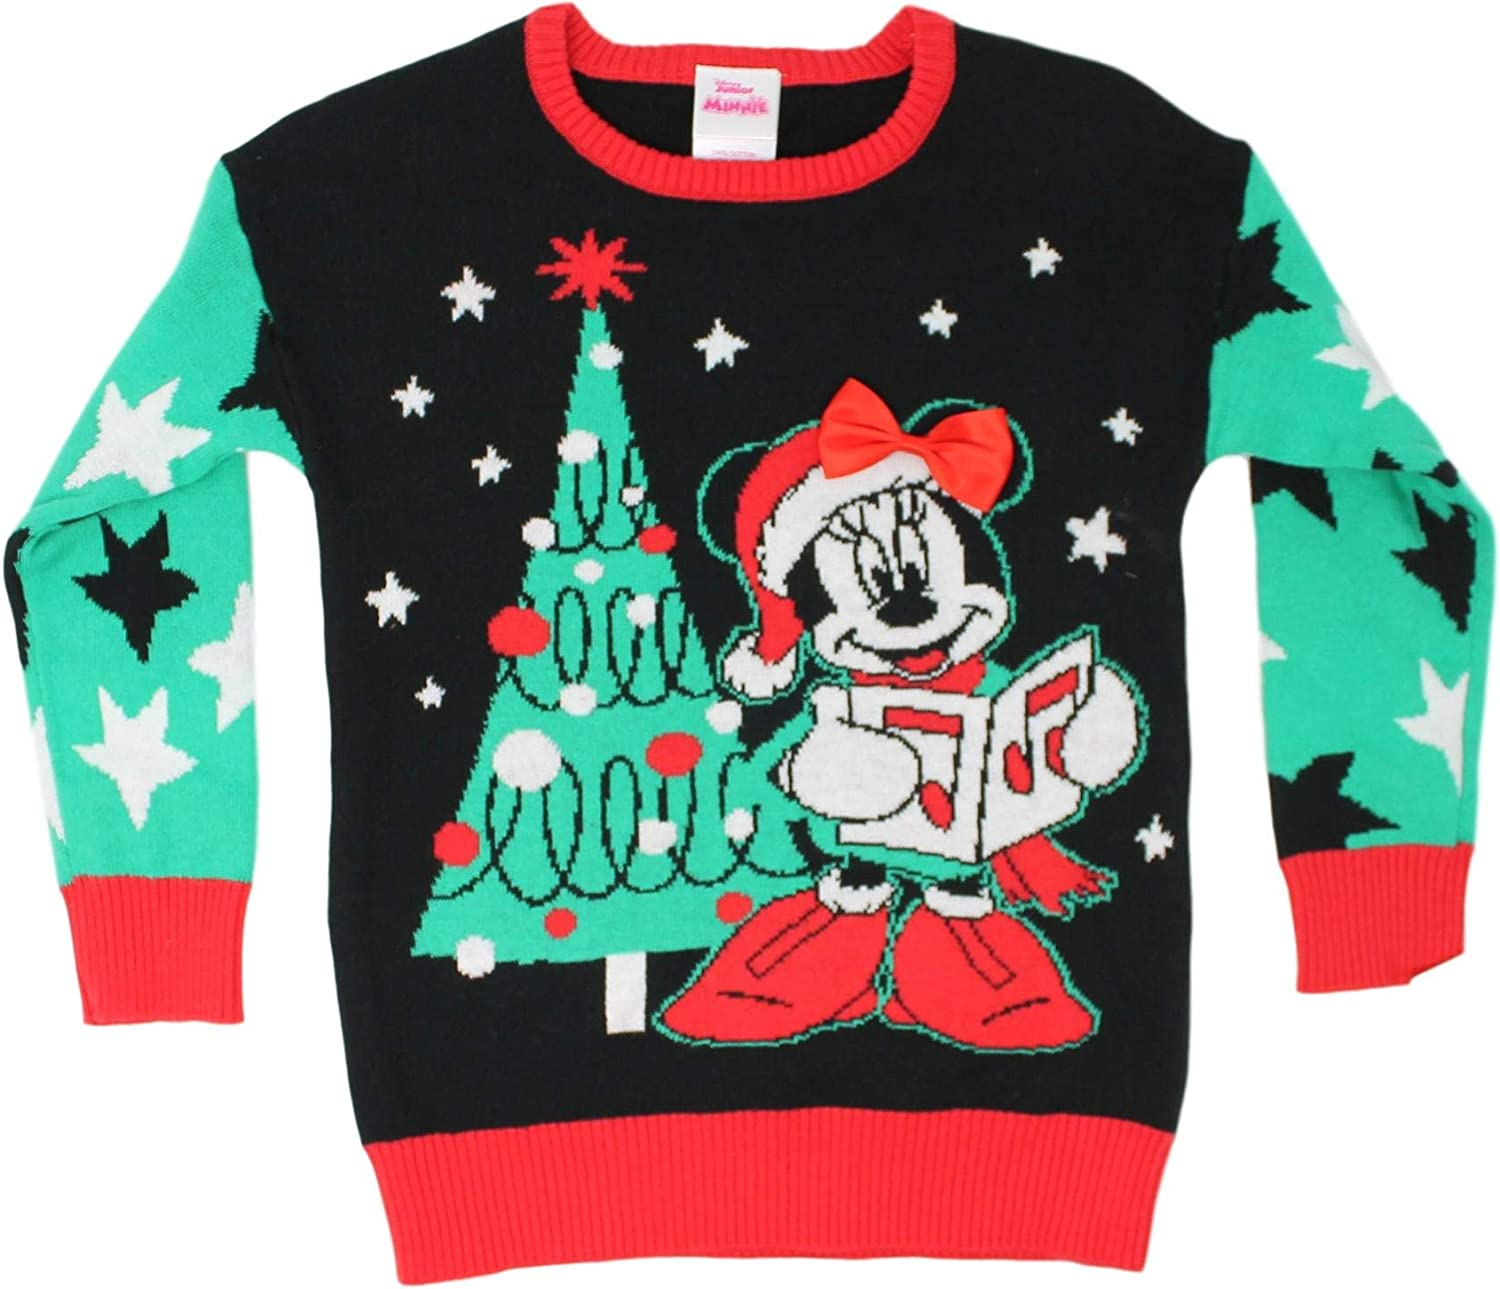 NWT Disney Store 2018 MINNIE MOUSE Holiday Christmas Sweater Girl Size 2